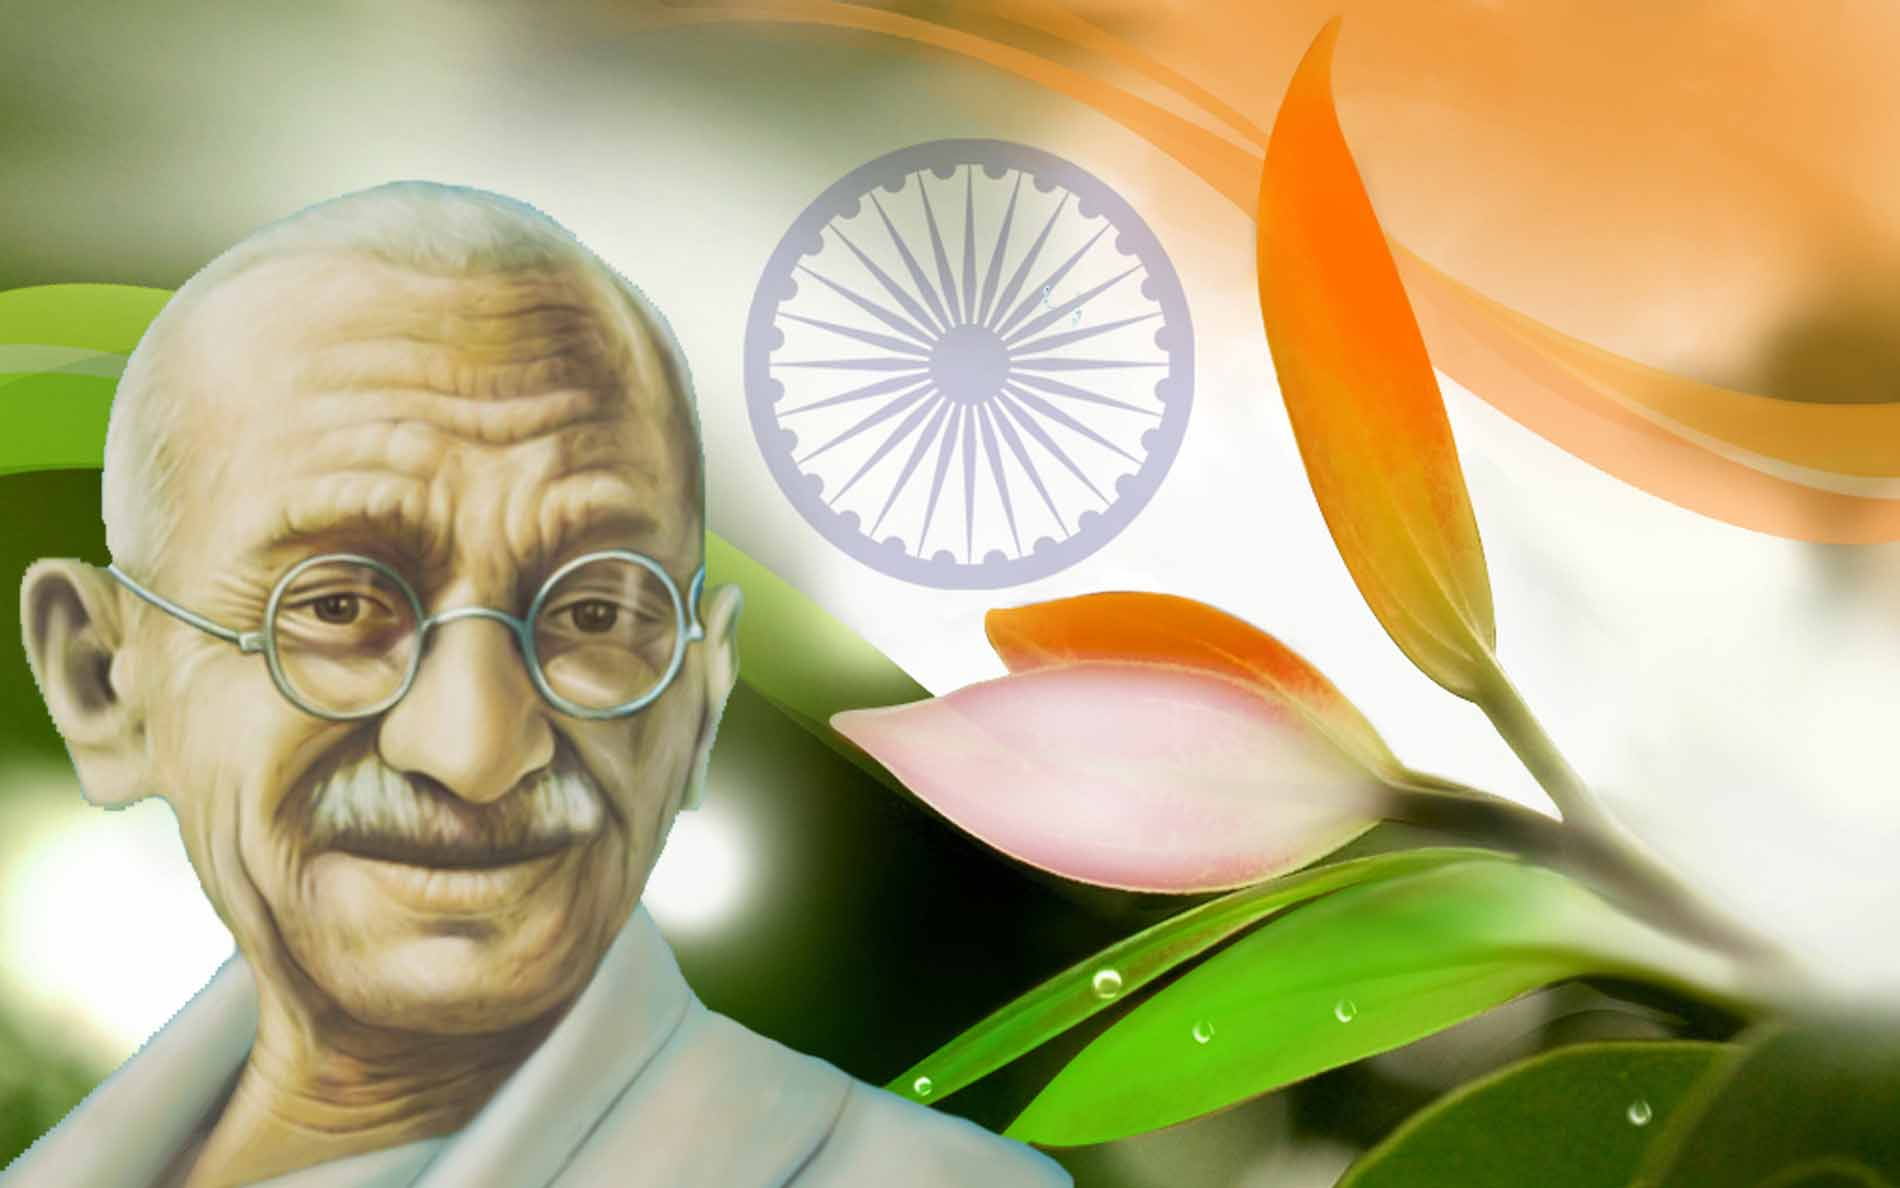 Happy Gandhi Jayanti Sms Massages And Whats App Wishes In